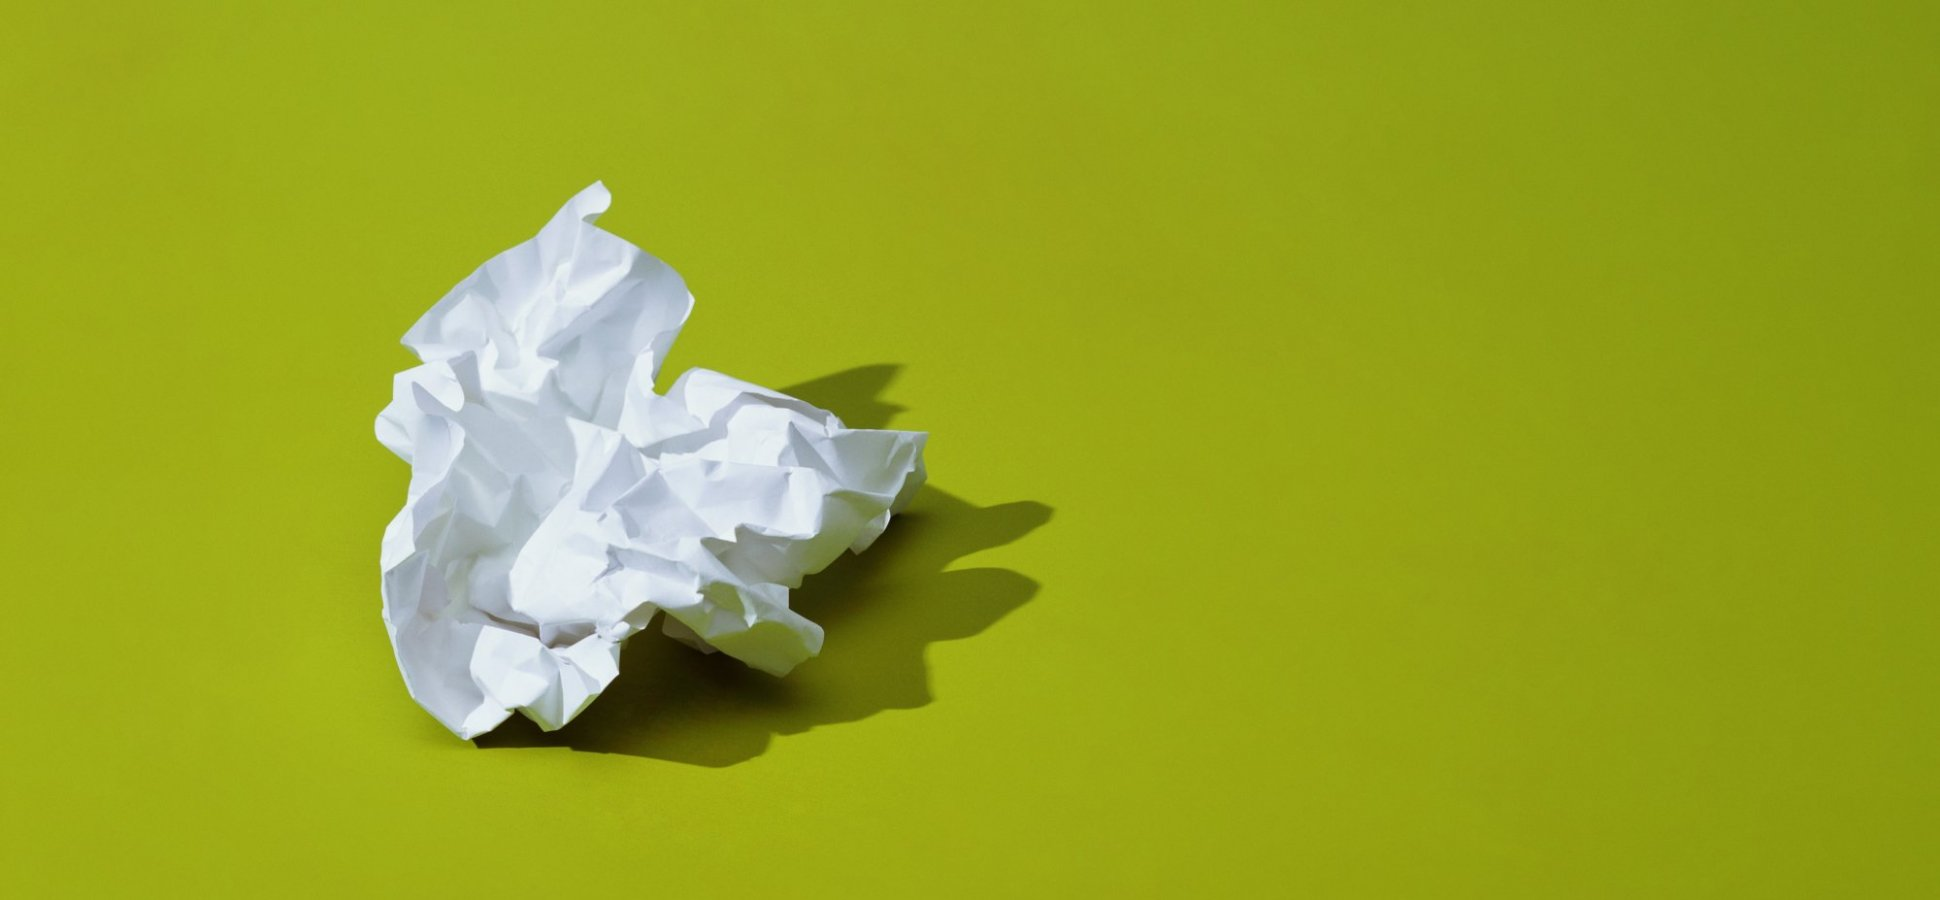 If You Don't Do These 4 Things, Your Meetings Might Just Be a Complete Waste of Time